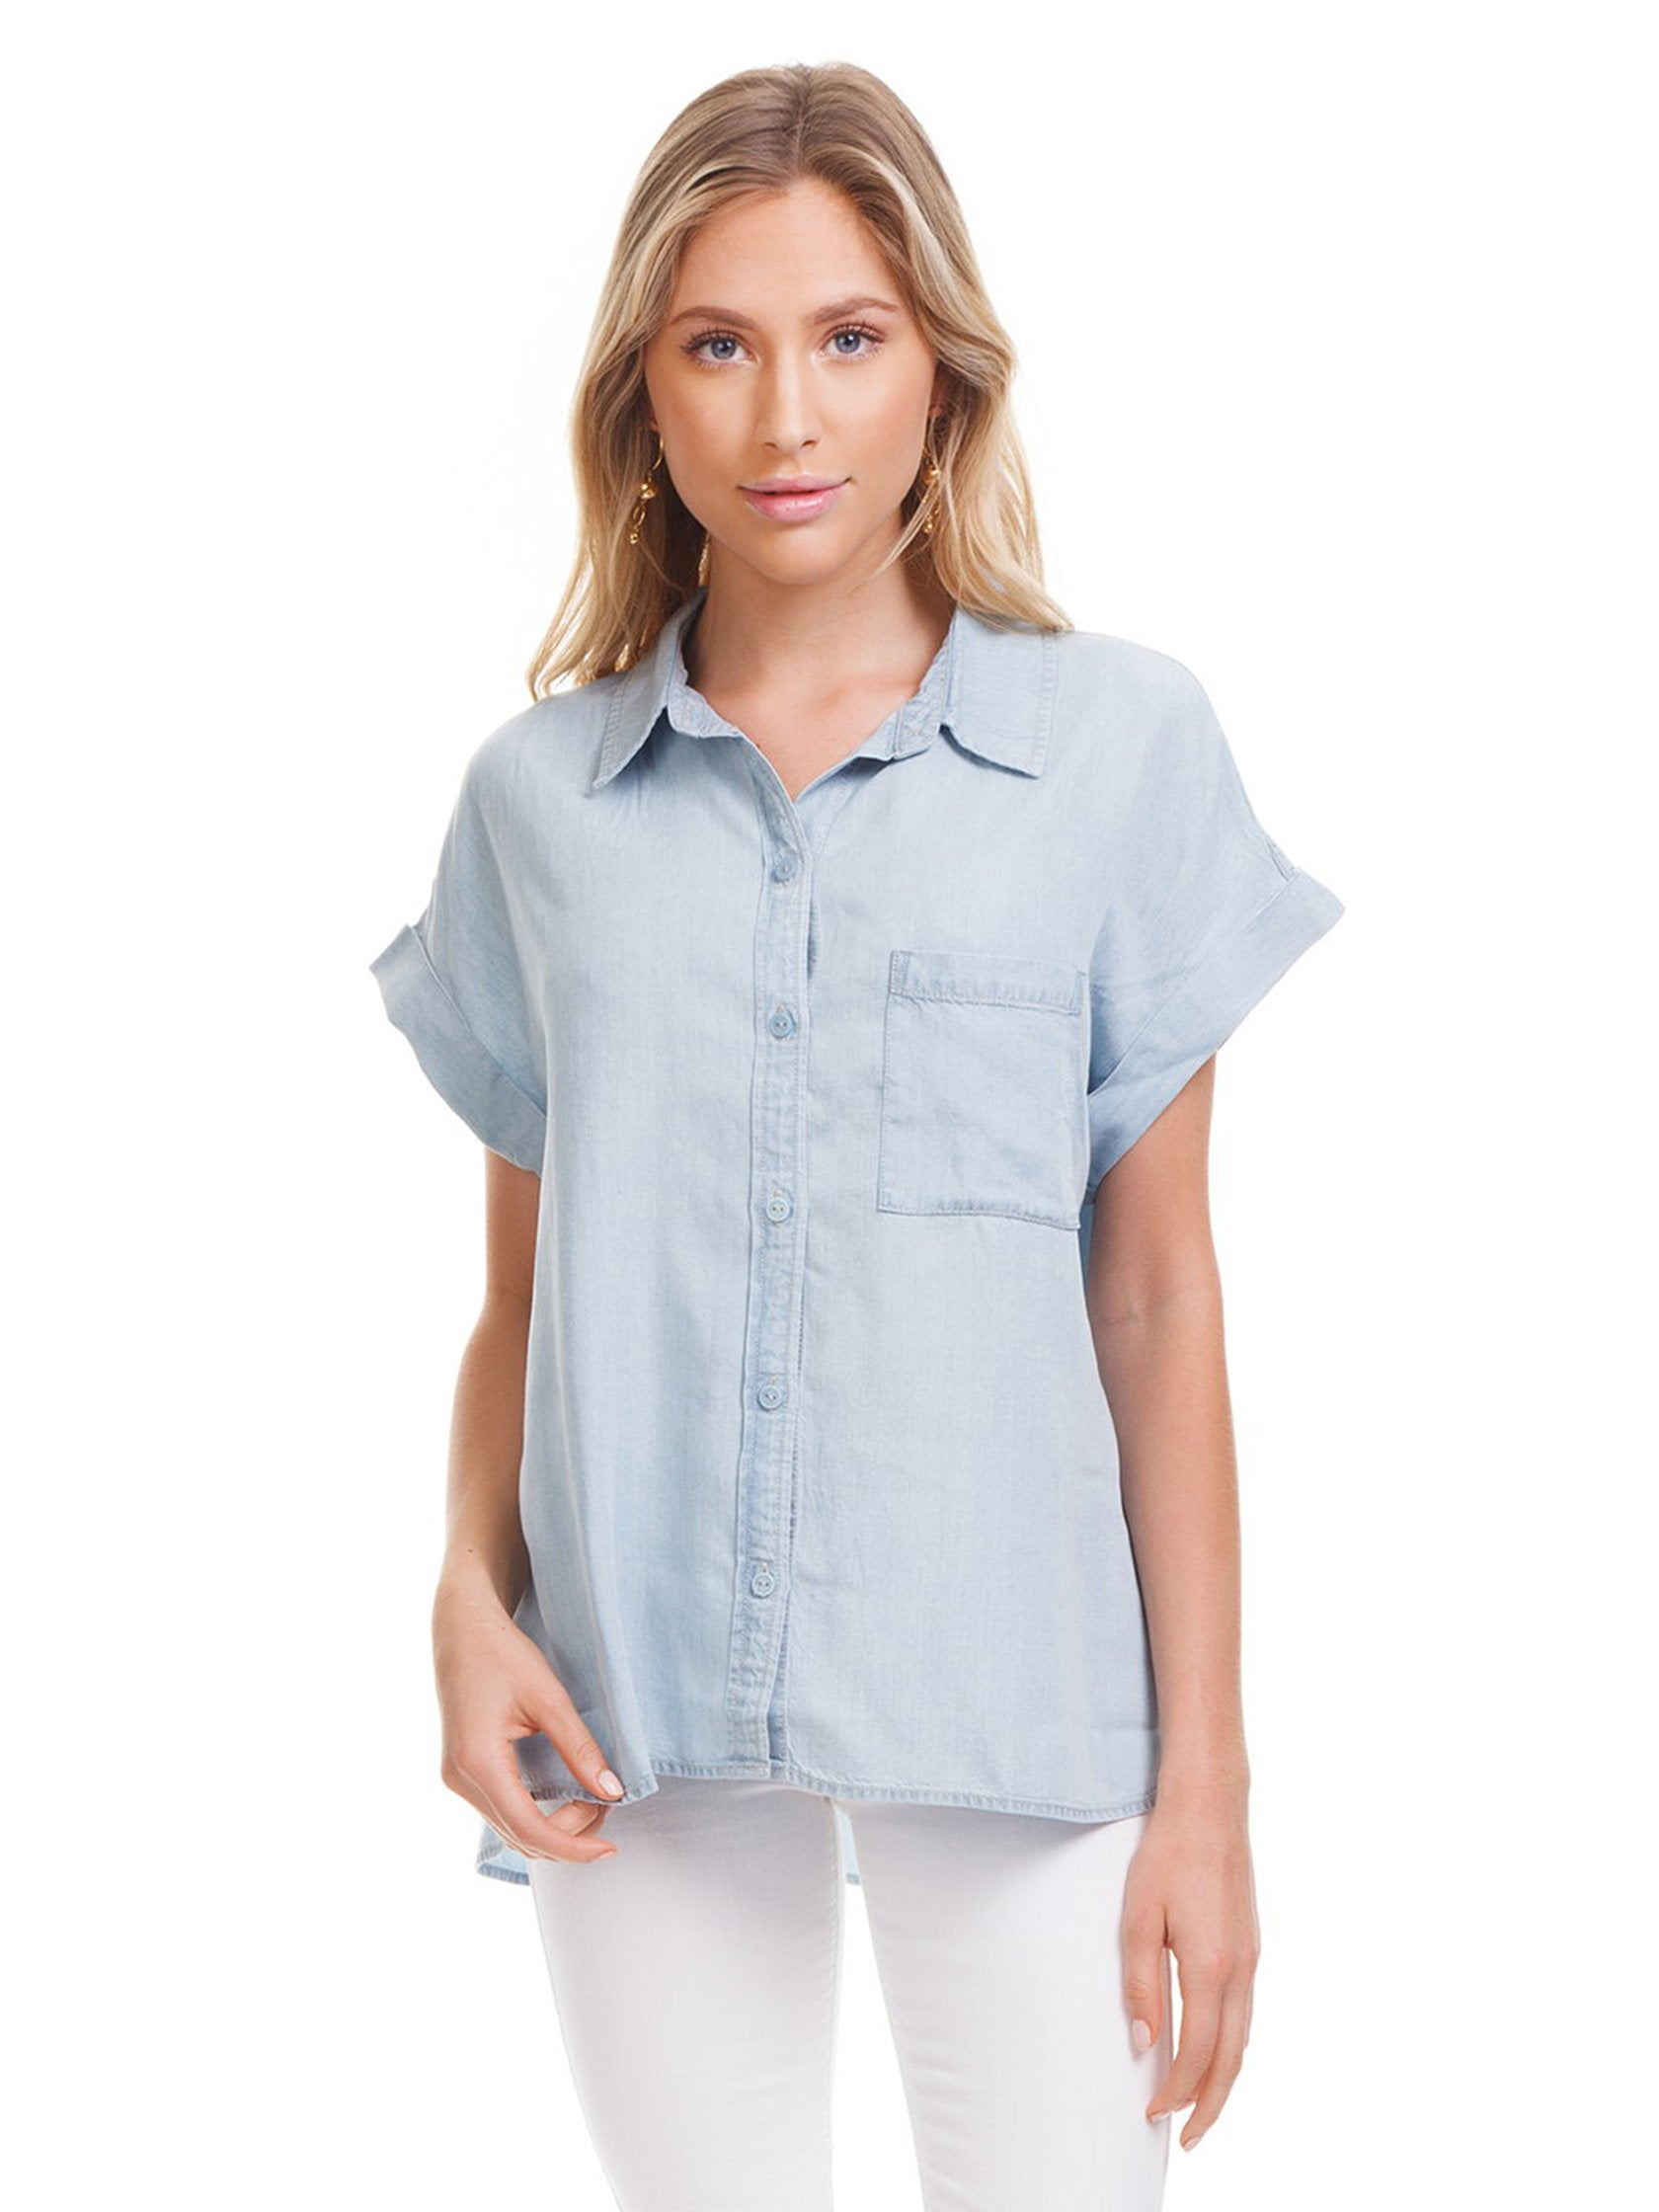 Woman wearing a top rental from SANCTUARY called Mod Short Sleeve Boyfriend Shirt